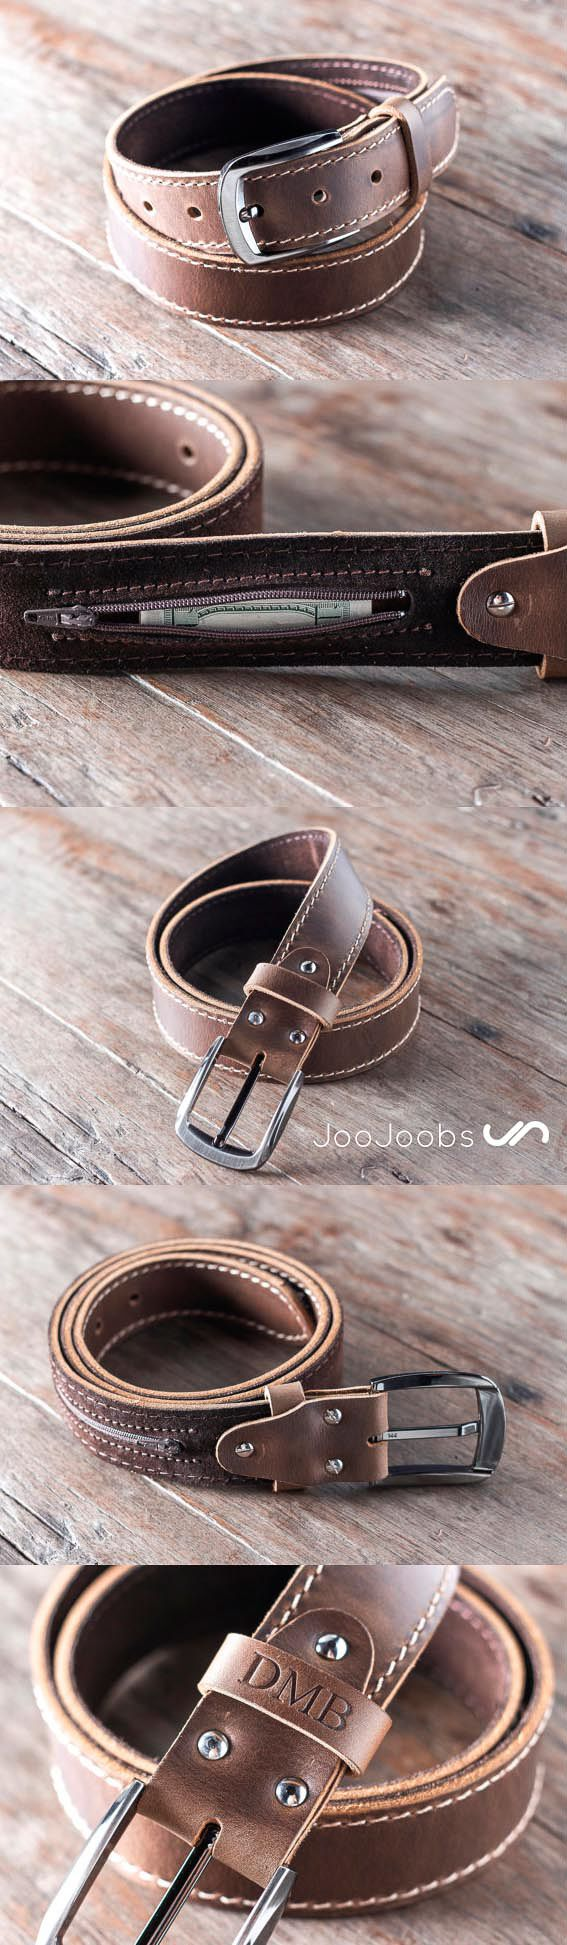 Handmade Mens Leather Belt by JooJoobs.com This belt has a secret, hidden pocket…